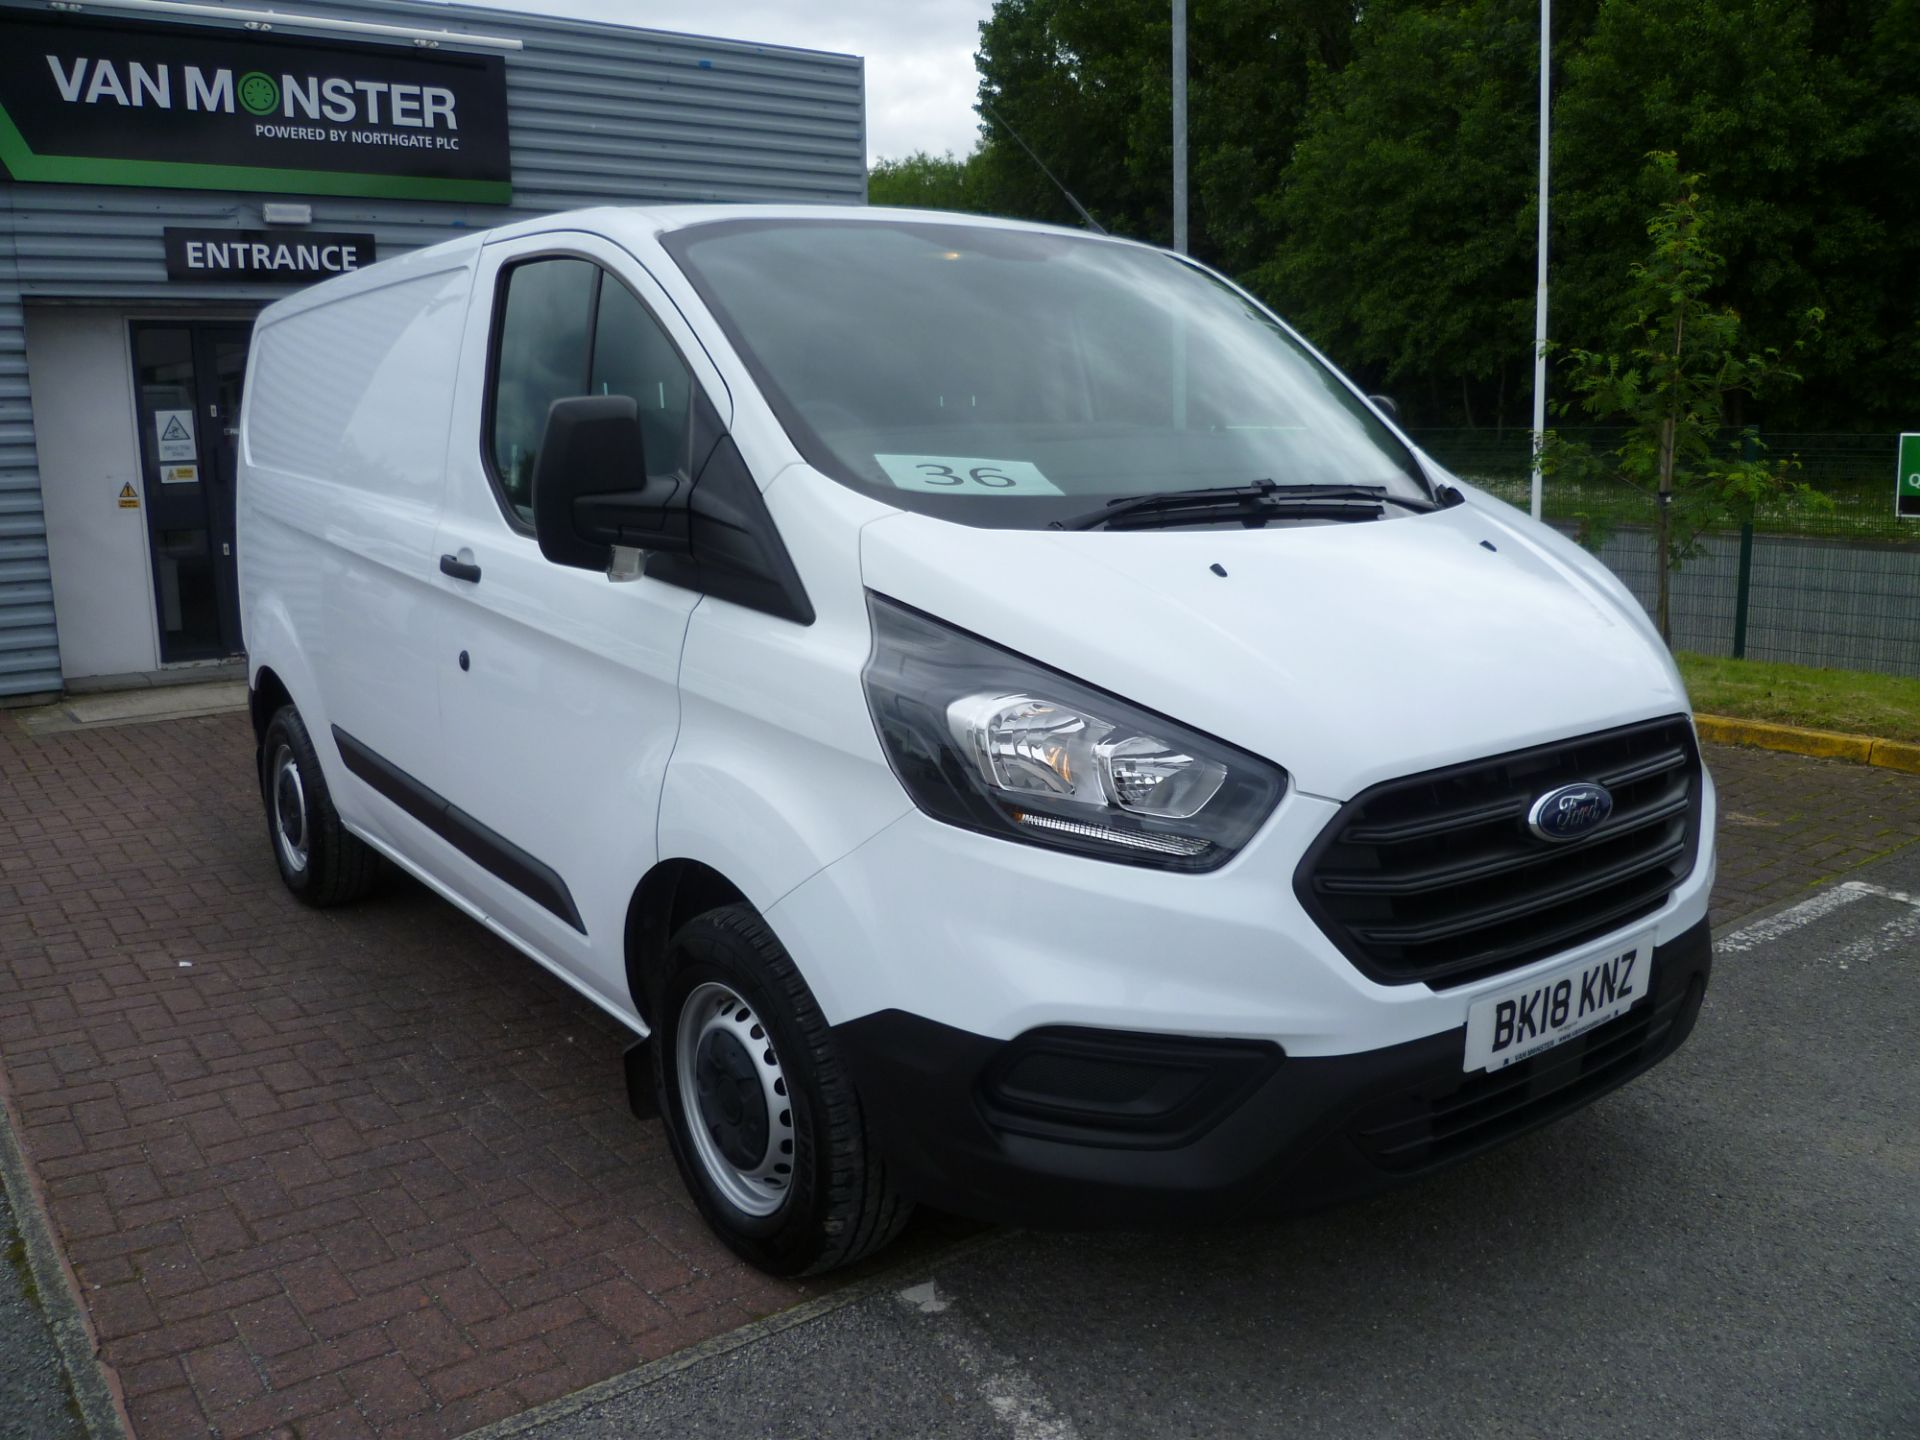 2018 Ford Transit Custom  300 L1 2.0TDCI 105PS LOW ROOF EURO 6 (BK18KNZ)